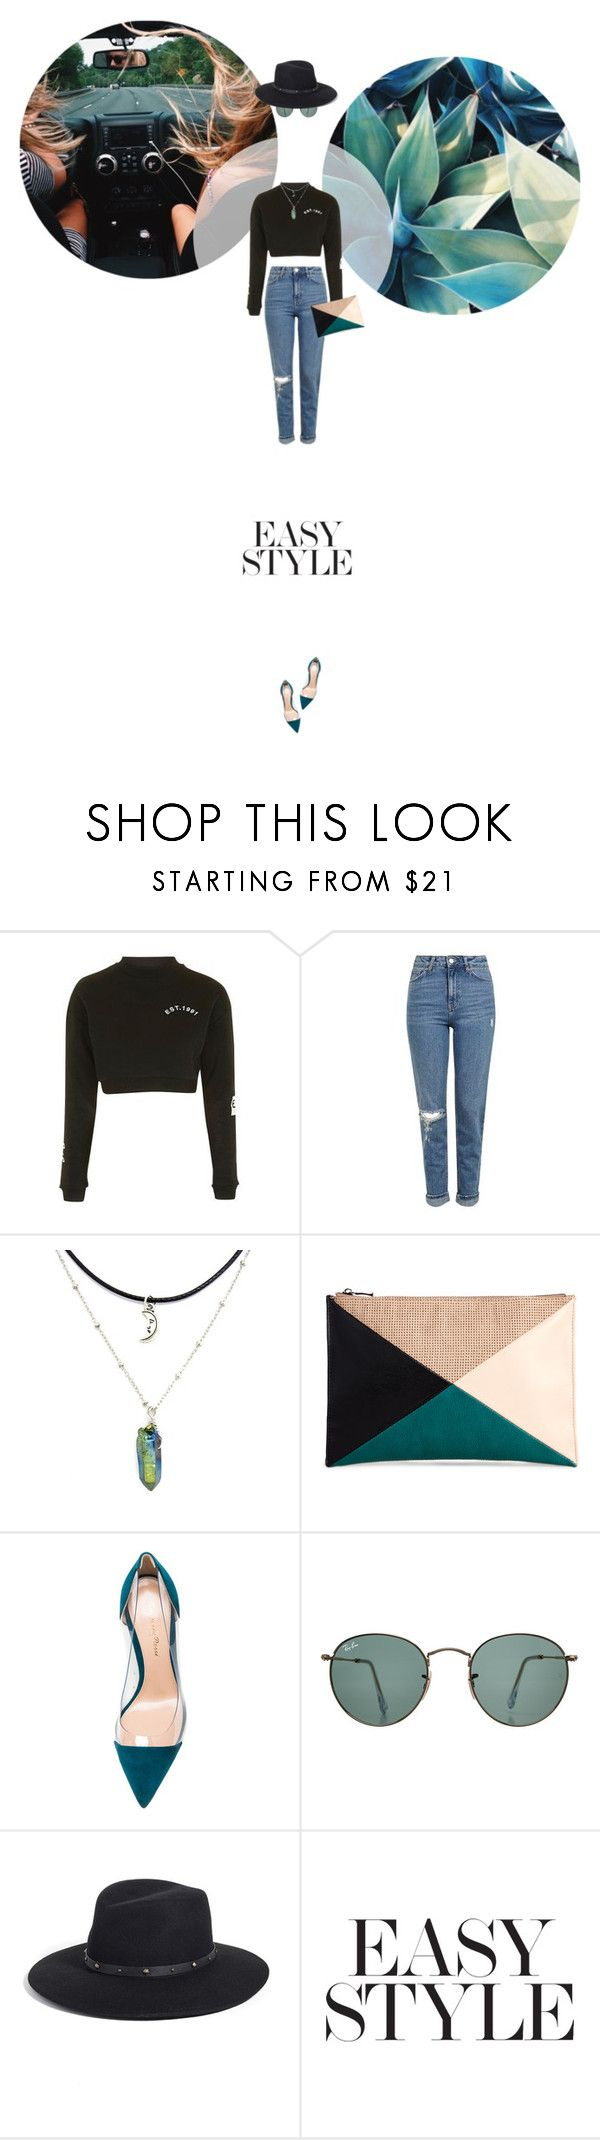 // 1296. Easy Style. by lilymcenvy on Polyvore featuring Topshop, Gianvito Rossi, Sole Society, Eric Javits and Ray-Ban